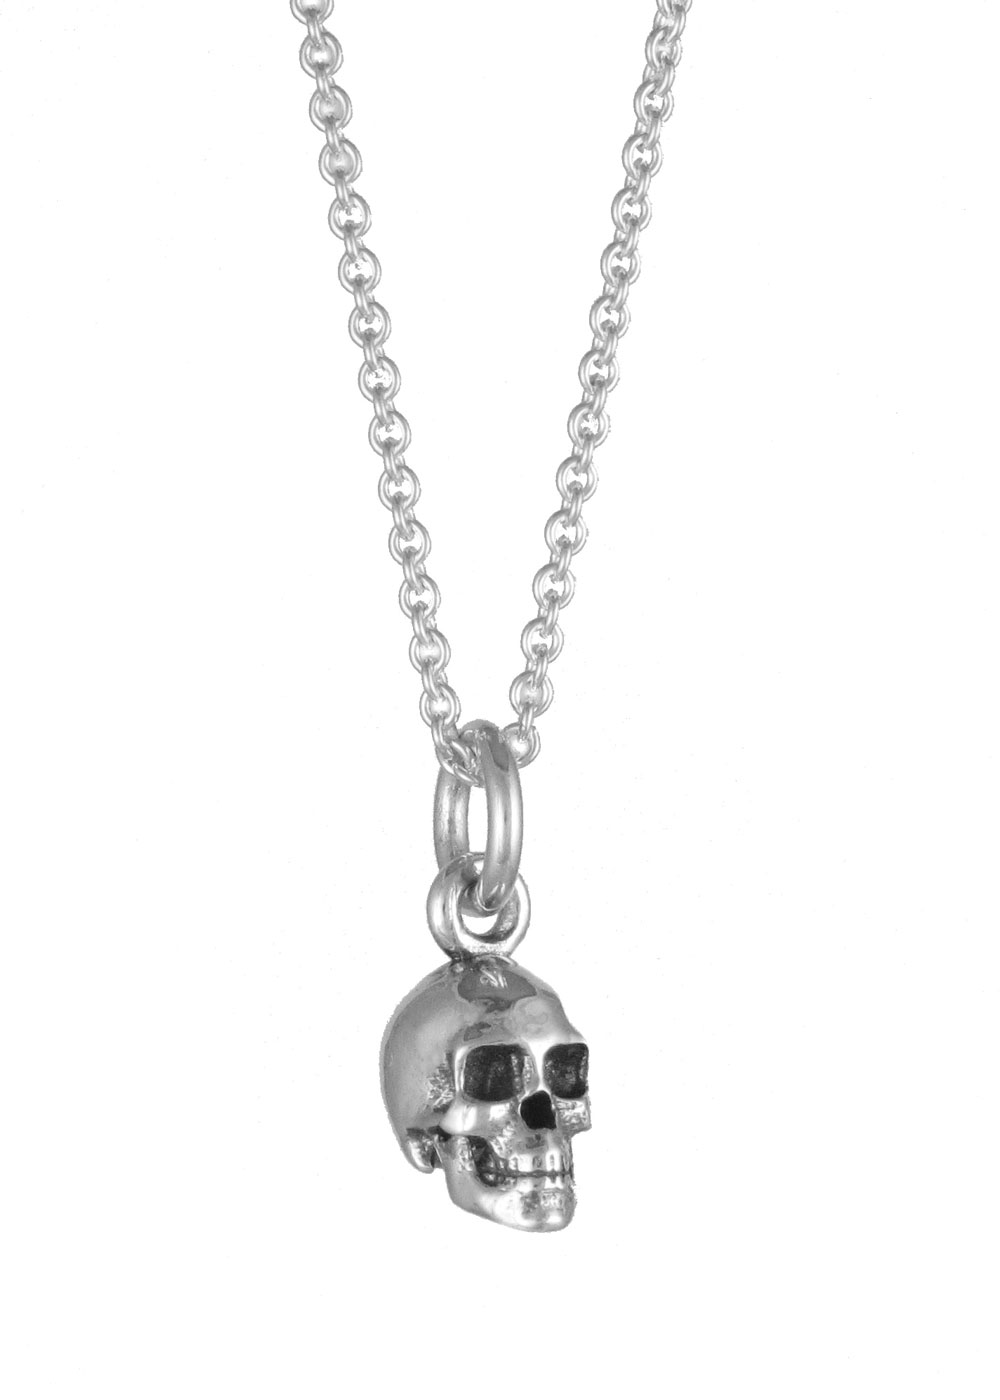 bazaar skull necklaces london grand necklace